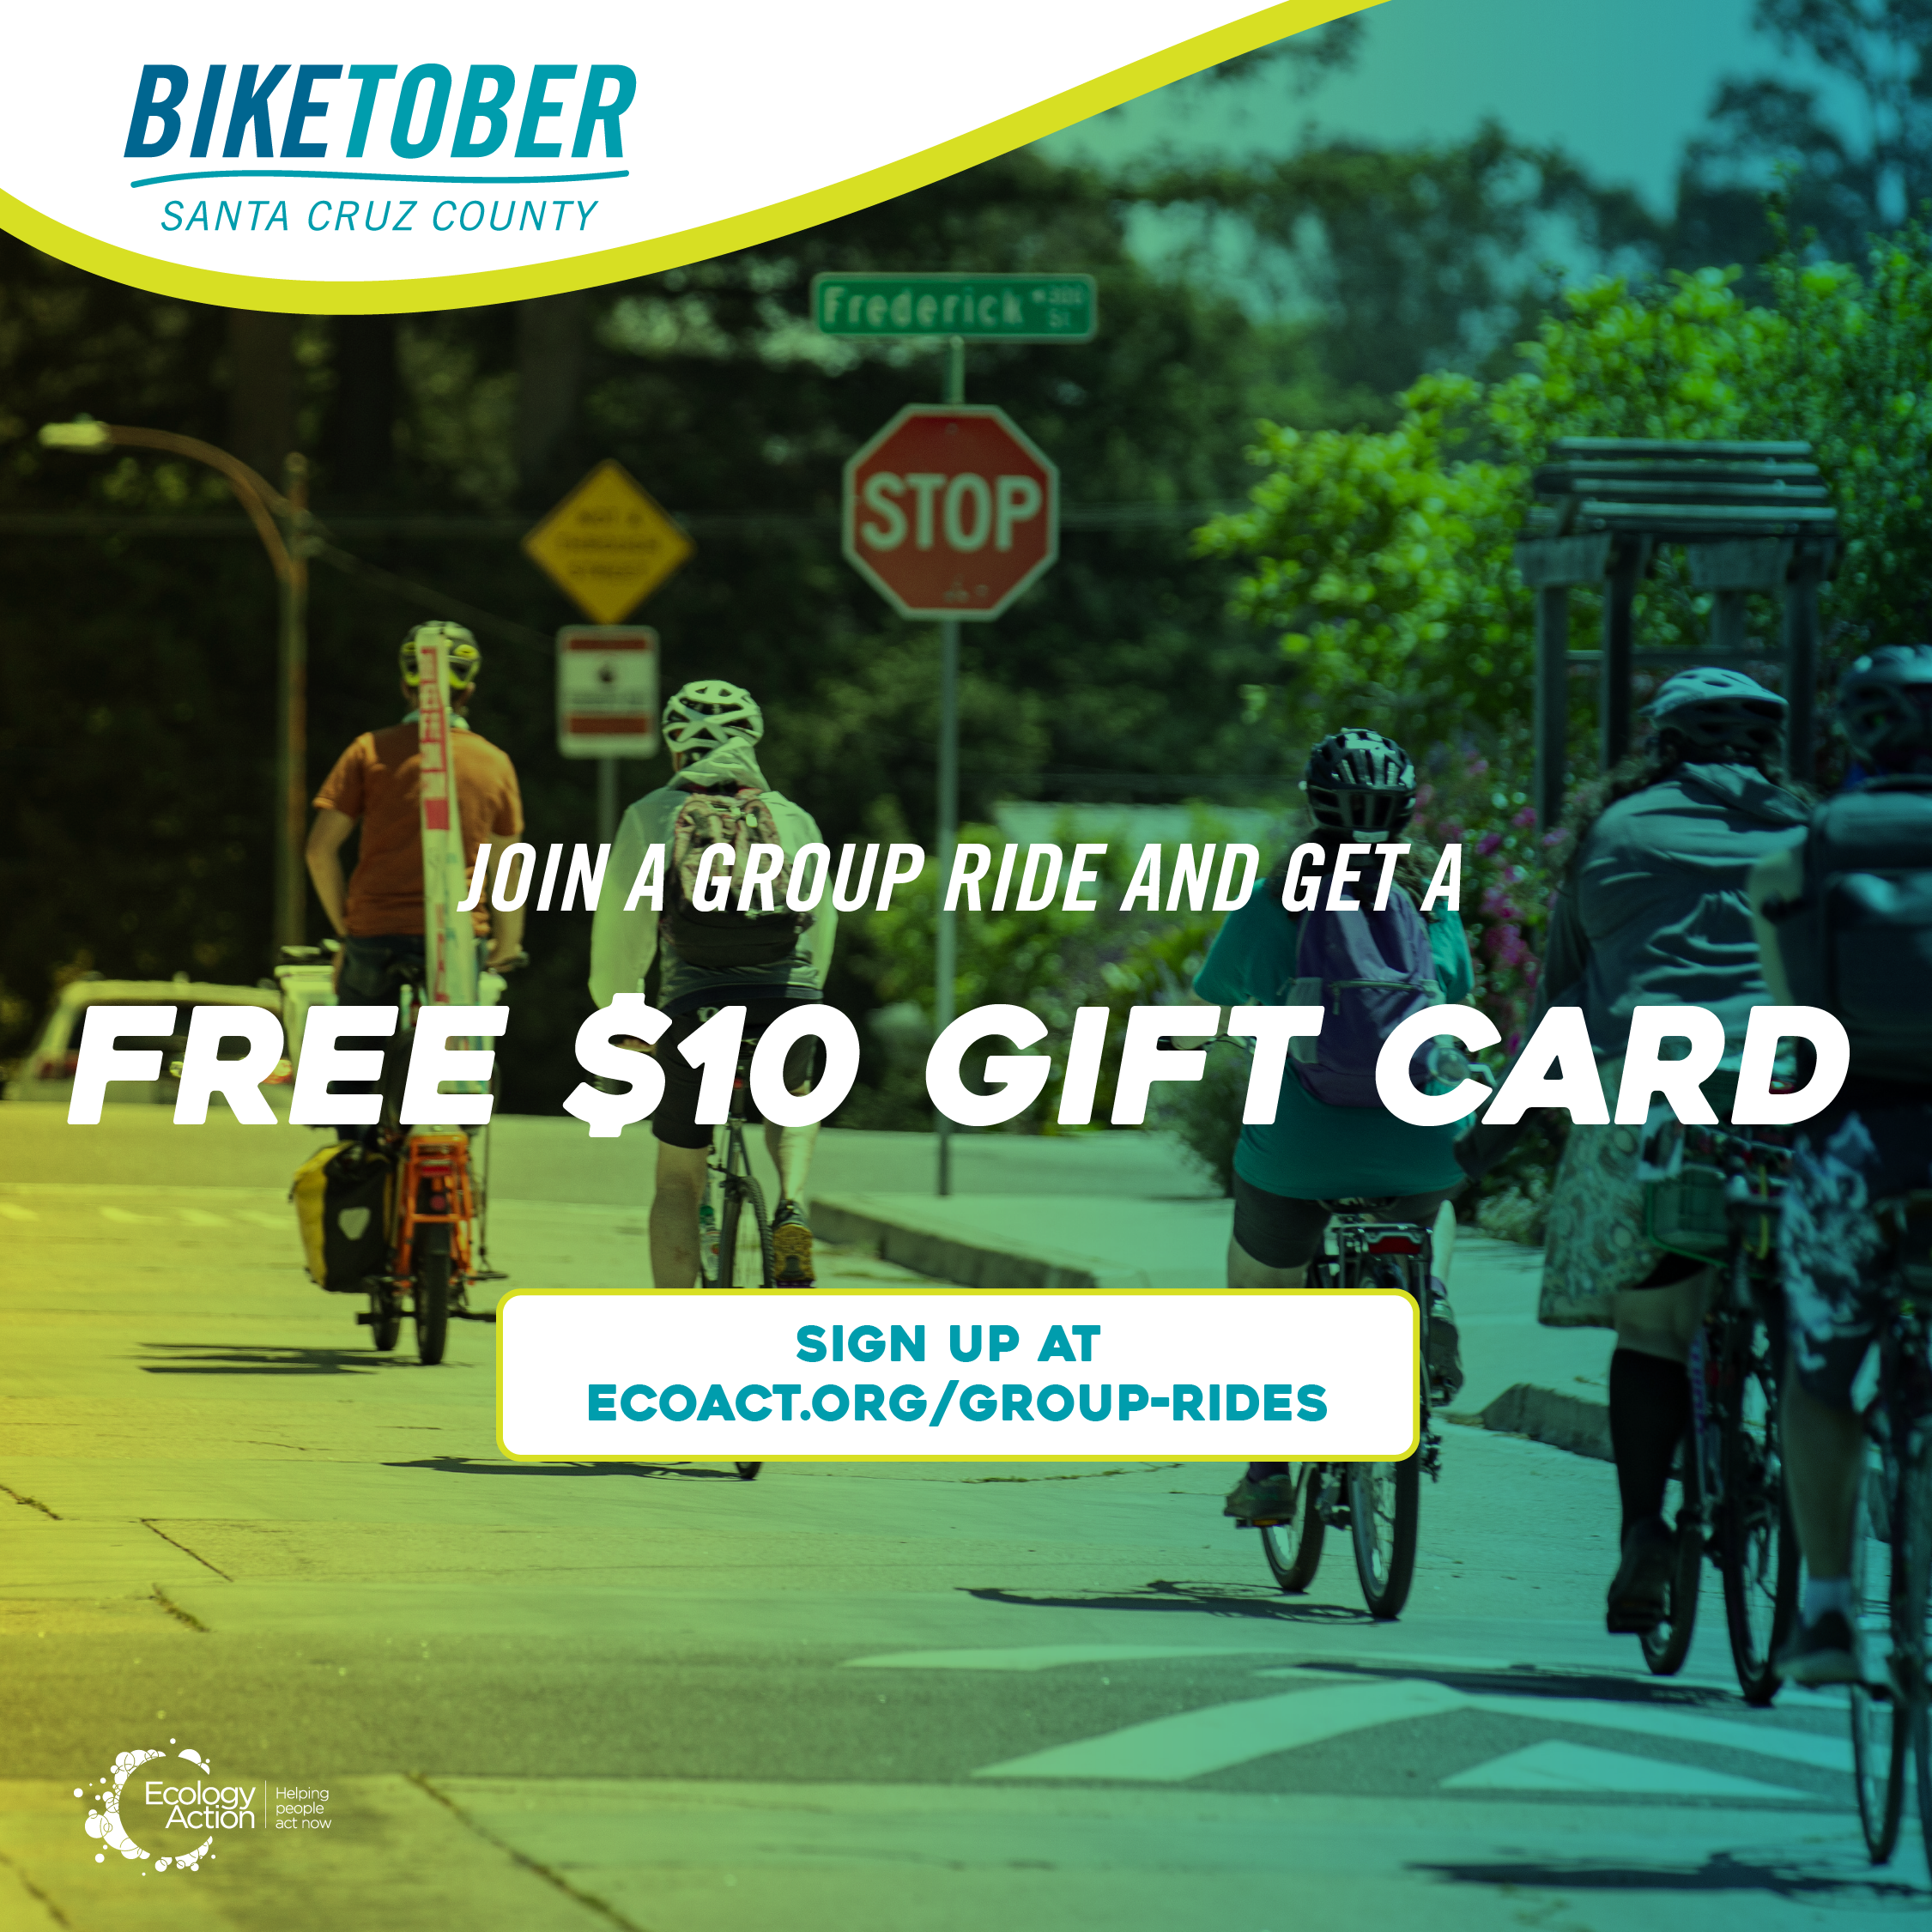 Biketober Santa Cruz County social media post with people riding bikes down a road. They have helmets on and the image has a green blue overlay theme. Text reads 'join a group ride and get a free $10 gift card'.